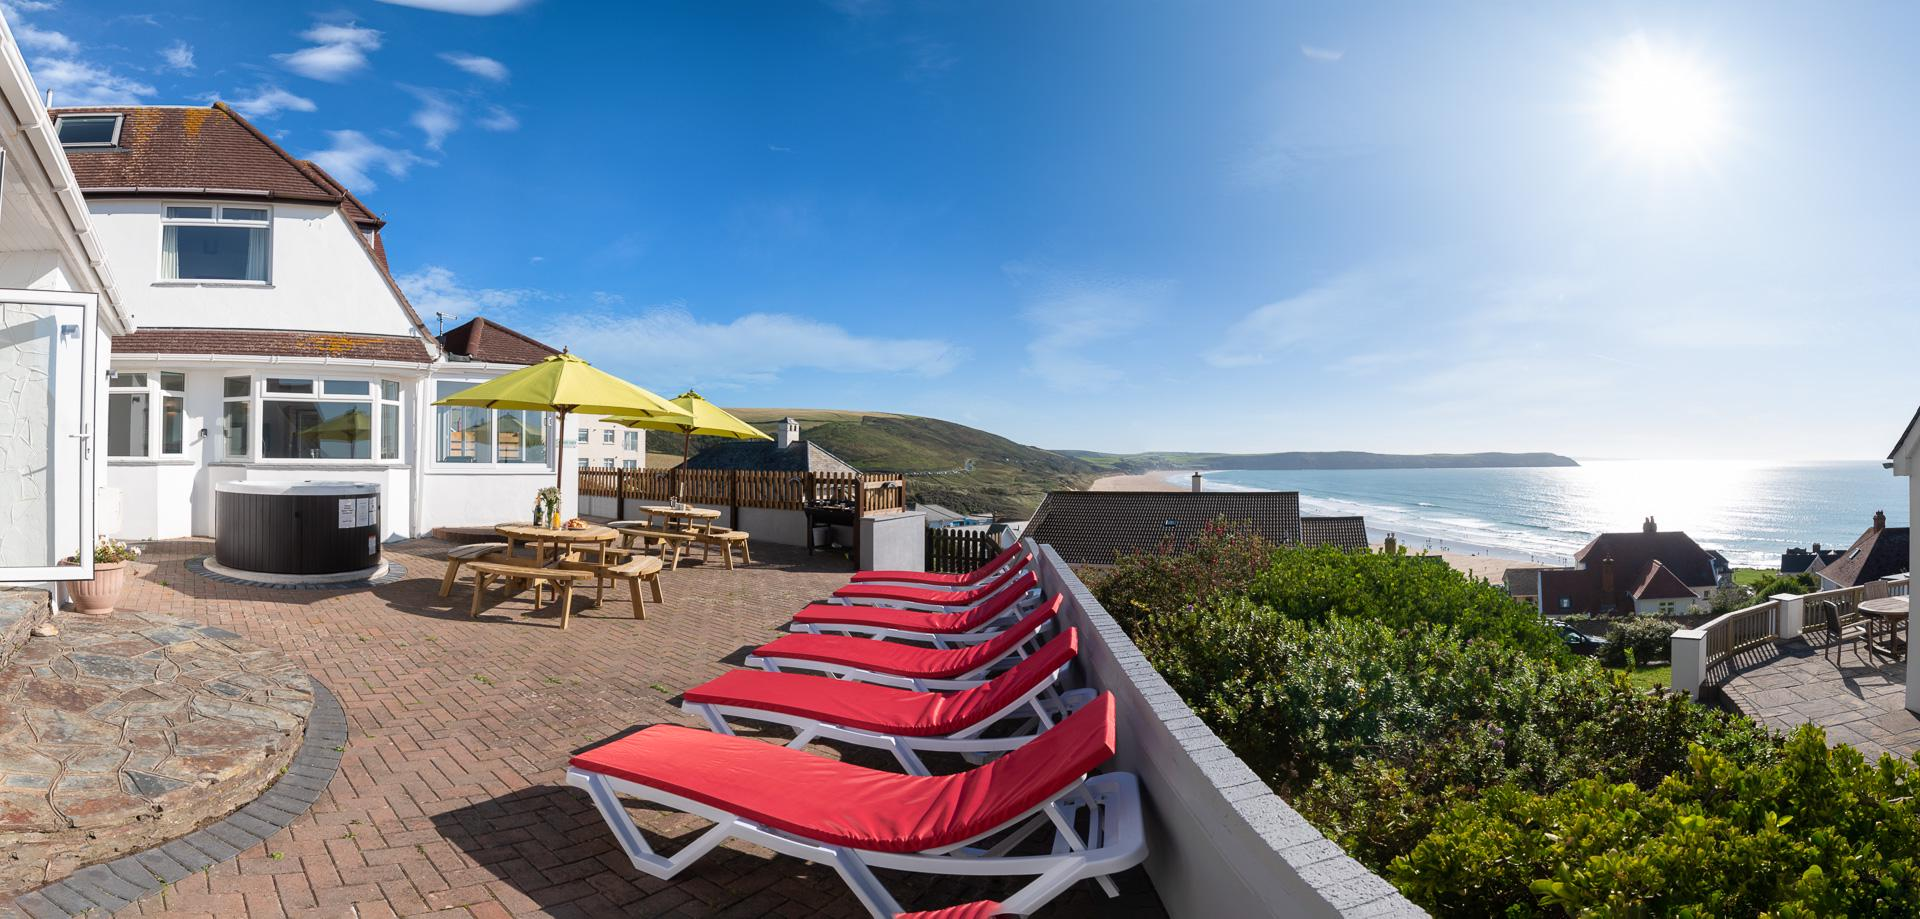 Self-Catering in Woolacombe holidays at Cool Places